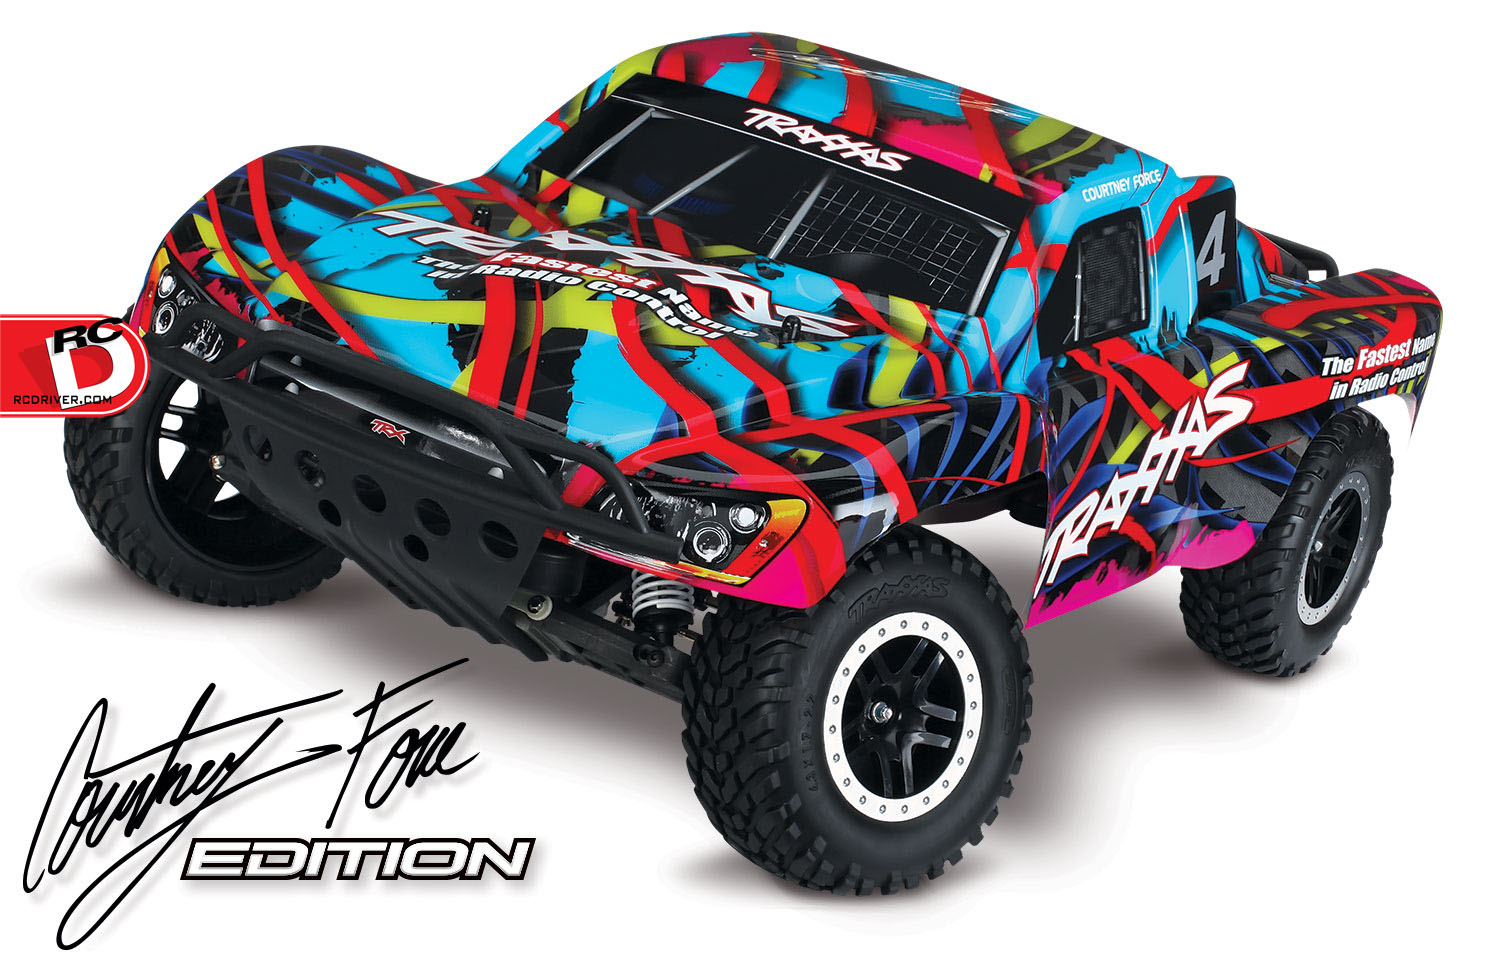 Traxxas Pink and Courtney Force Editions of the Slash Stampede Bandit and Rustler_1 copy pink and courtney force editions of the slash, stampede, bandit RC Wiring Diagrams at alyssarenee.co